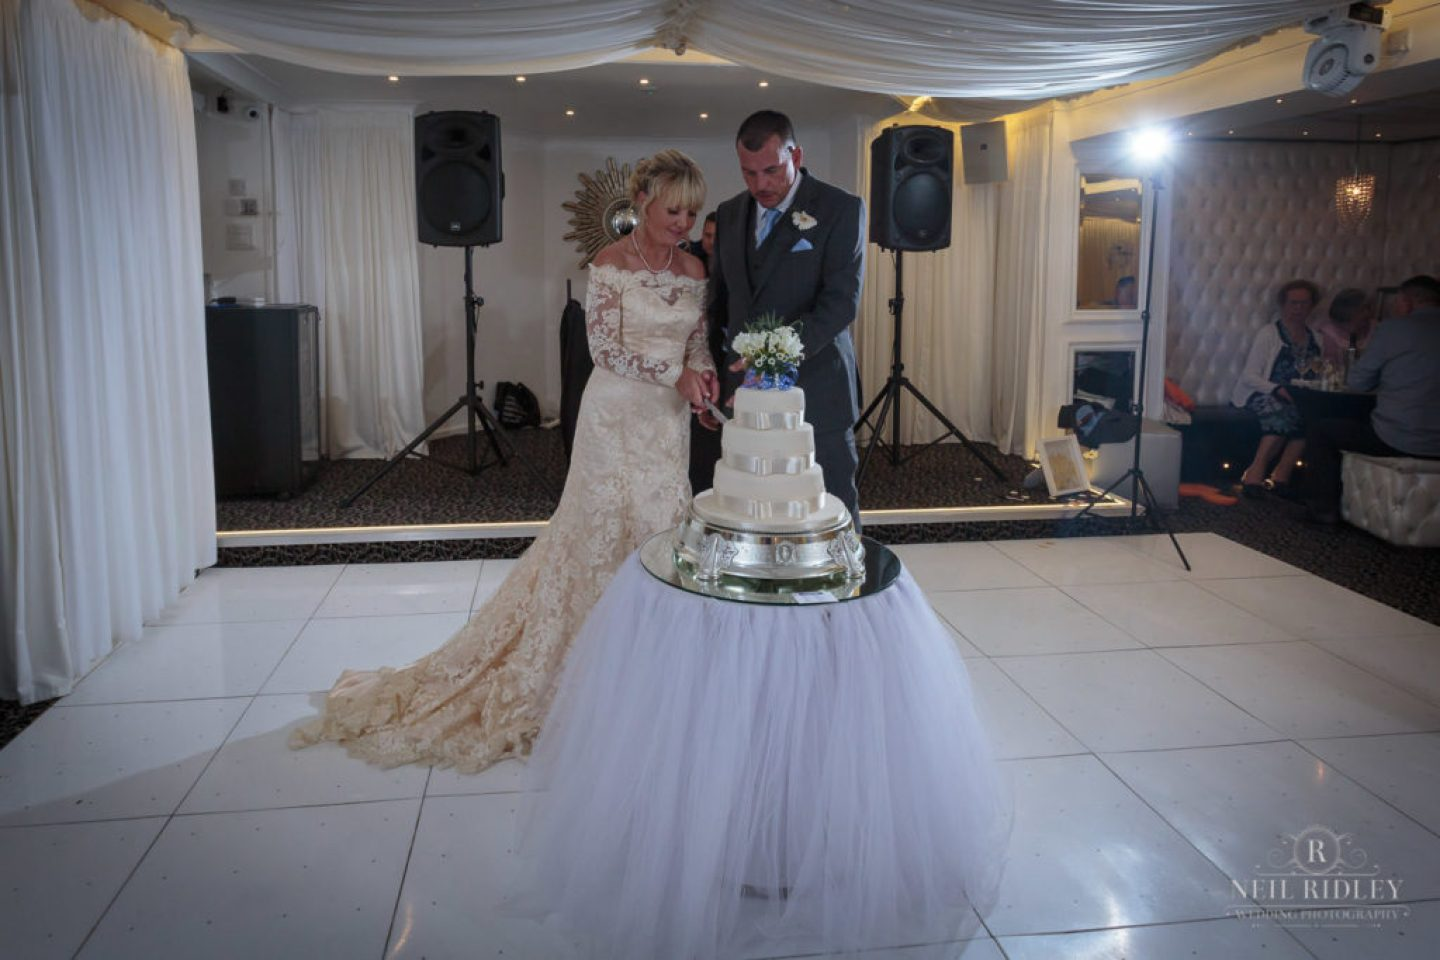 Bride and Groom cut the cake on the dance floor at The Park House Hotel, Blackpool